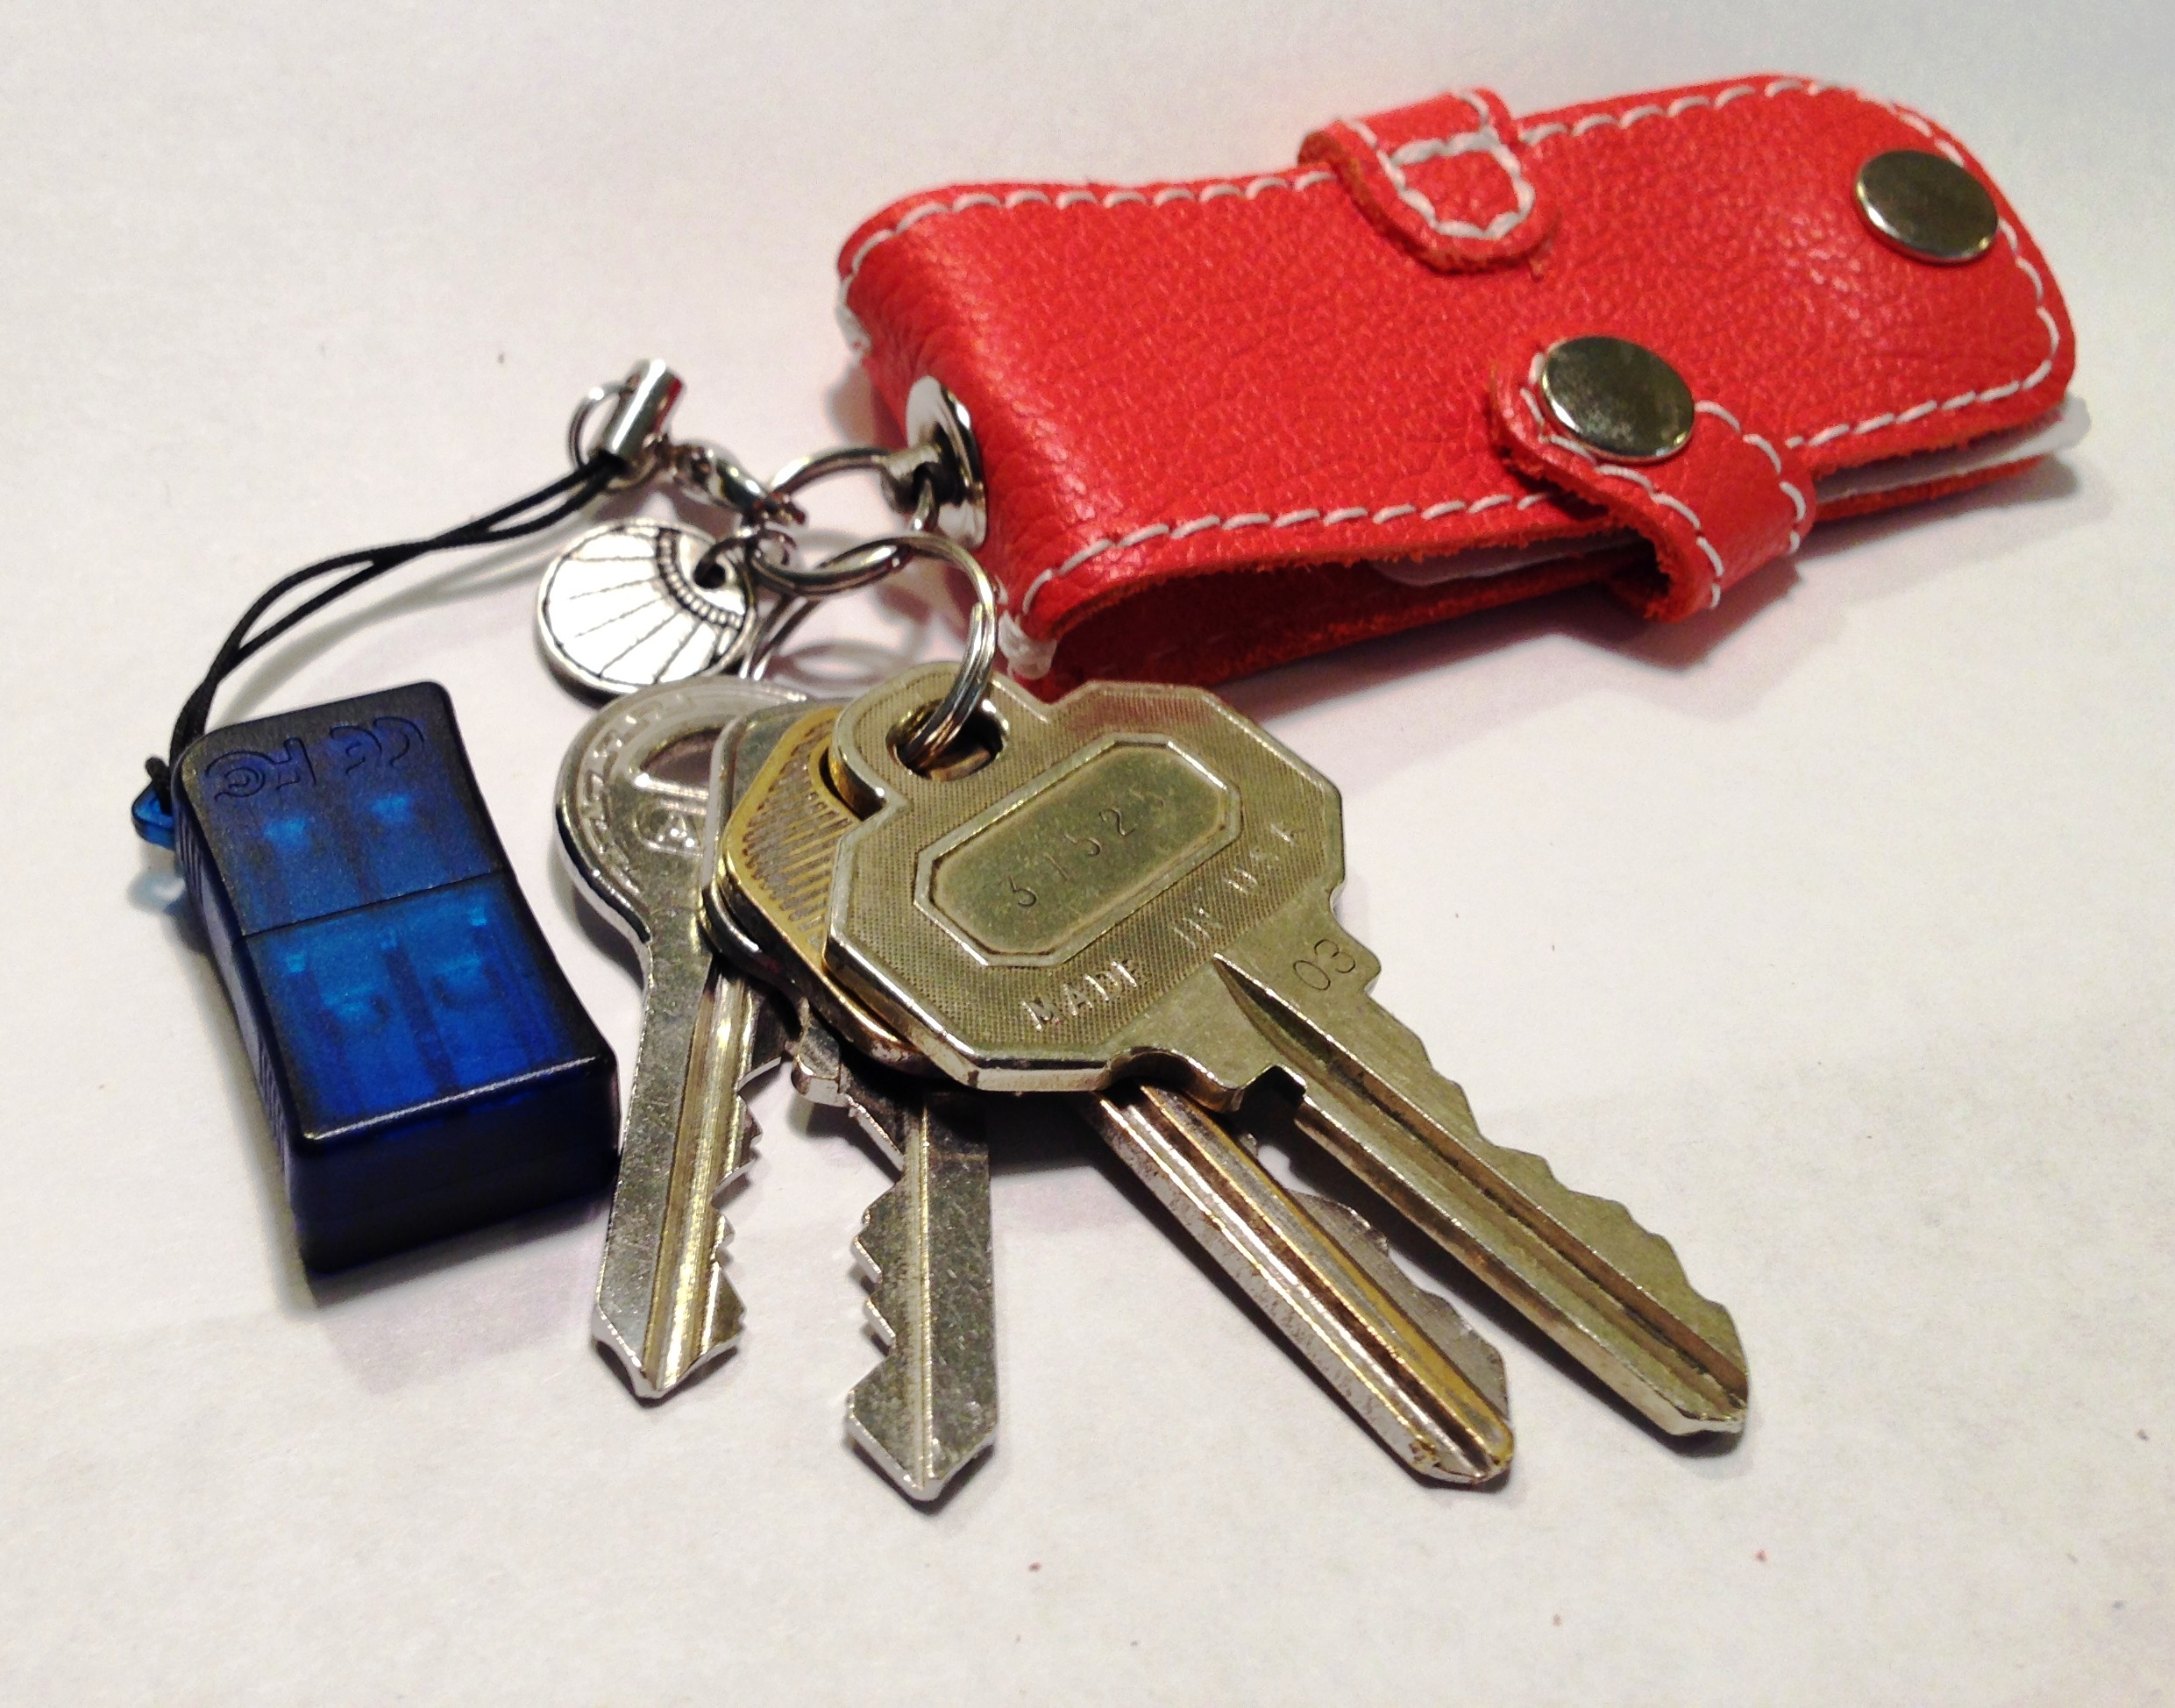 Even has a swivel Key Ring, very clever.